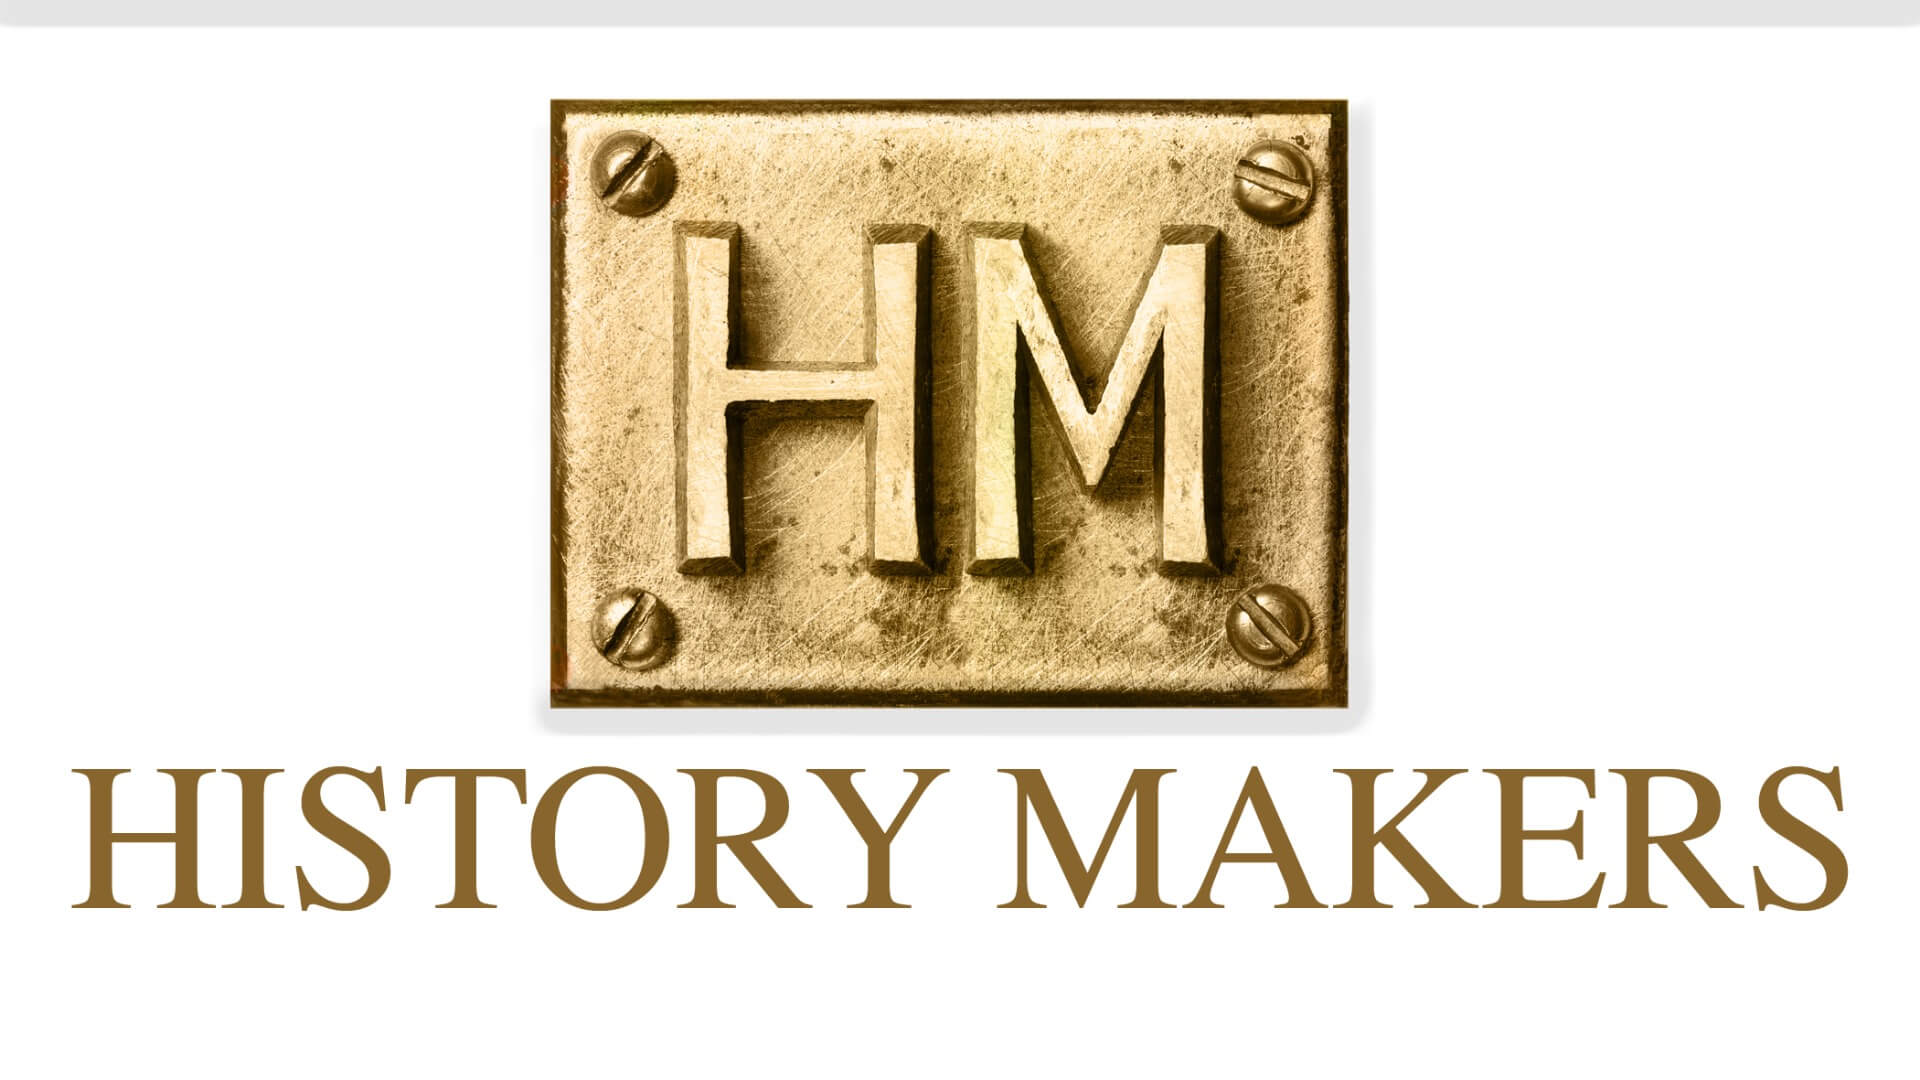 History Makers 2018 logo